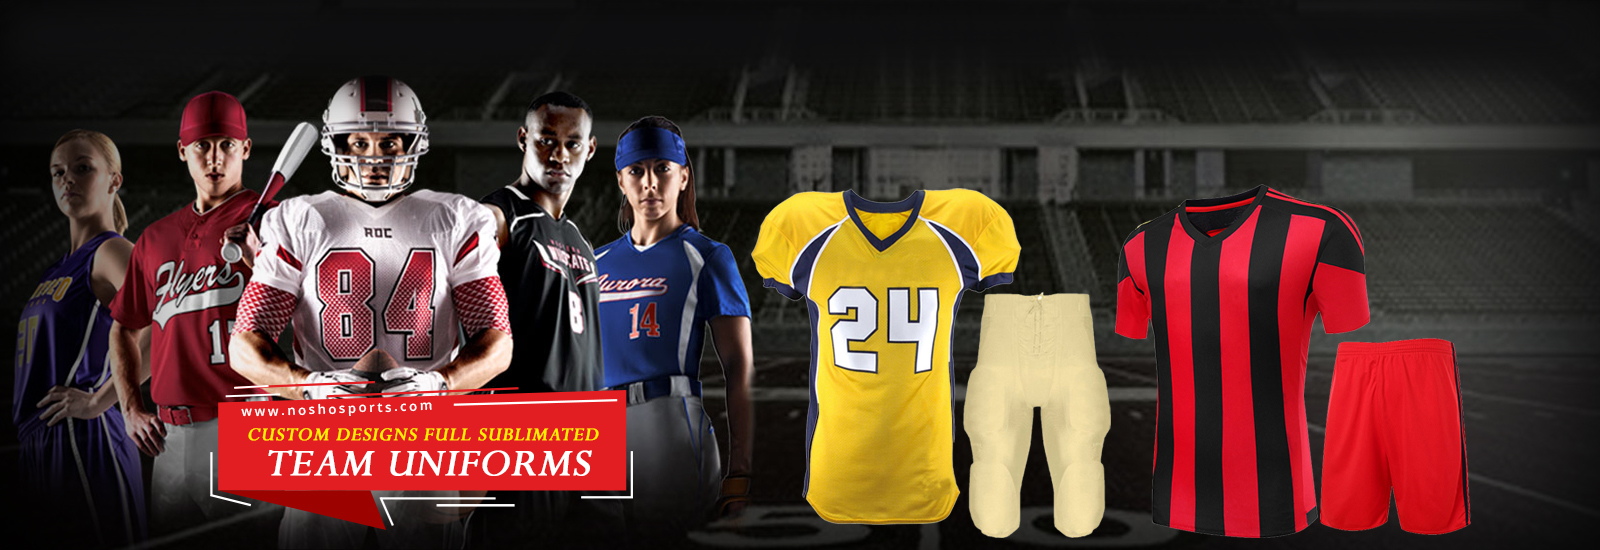 Team Uniforms 2